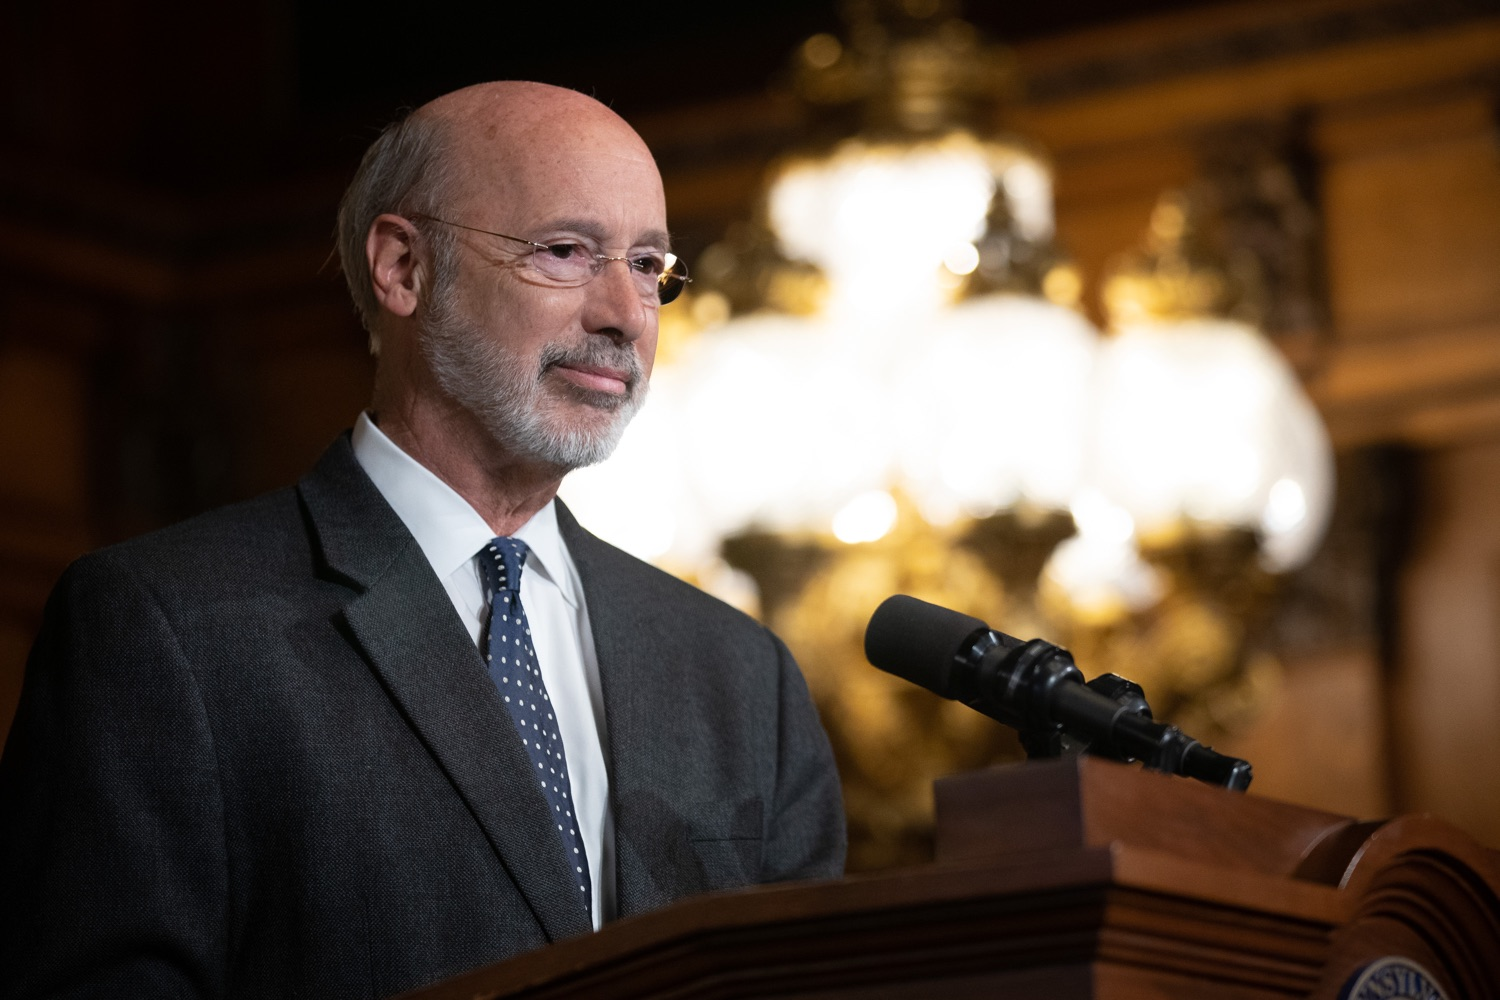 "<a href=""http://filesource.abacast.com/commonwealthofpa/photo/17423_gov_trip_recap_dz_017.jpg"" target=""_blank"">⇣ Download Photo<br></a>Harrisburg, PA  Governor Tom Wolf speaking about his recent visit to Lithuania and Poland.  Governor Tom Wolf today highlighted the second half of his trip abroad, including visiting with more than 500 PA National Guard (PNG) troops in Poland, and honoring the Tree of Life synagogue victims at the Auschwitz-Birkenau Memorial.  Tuesday, September 17, 2019"